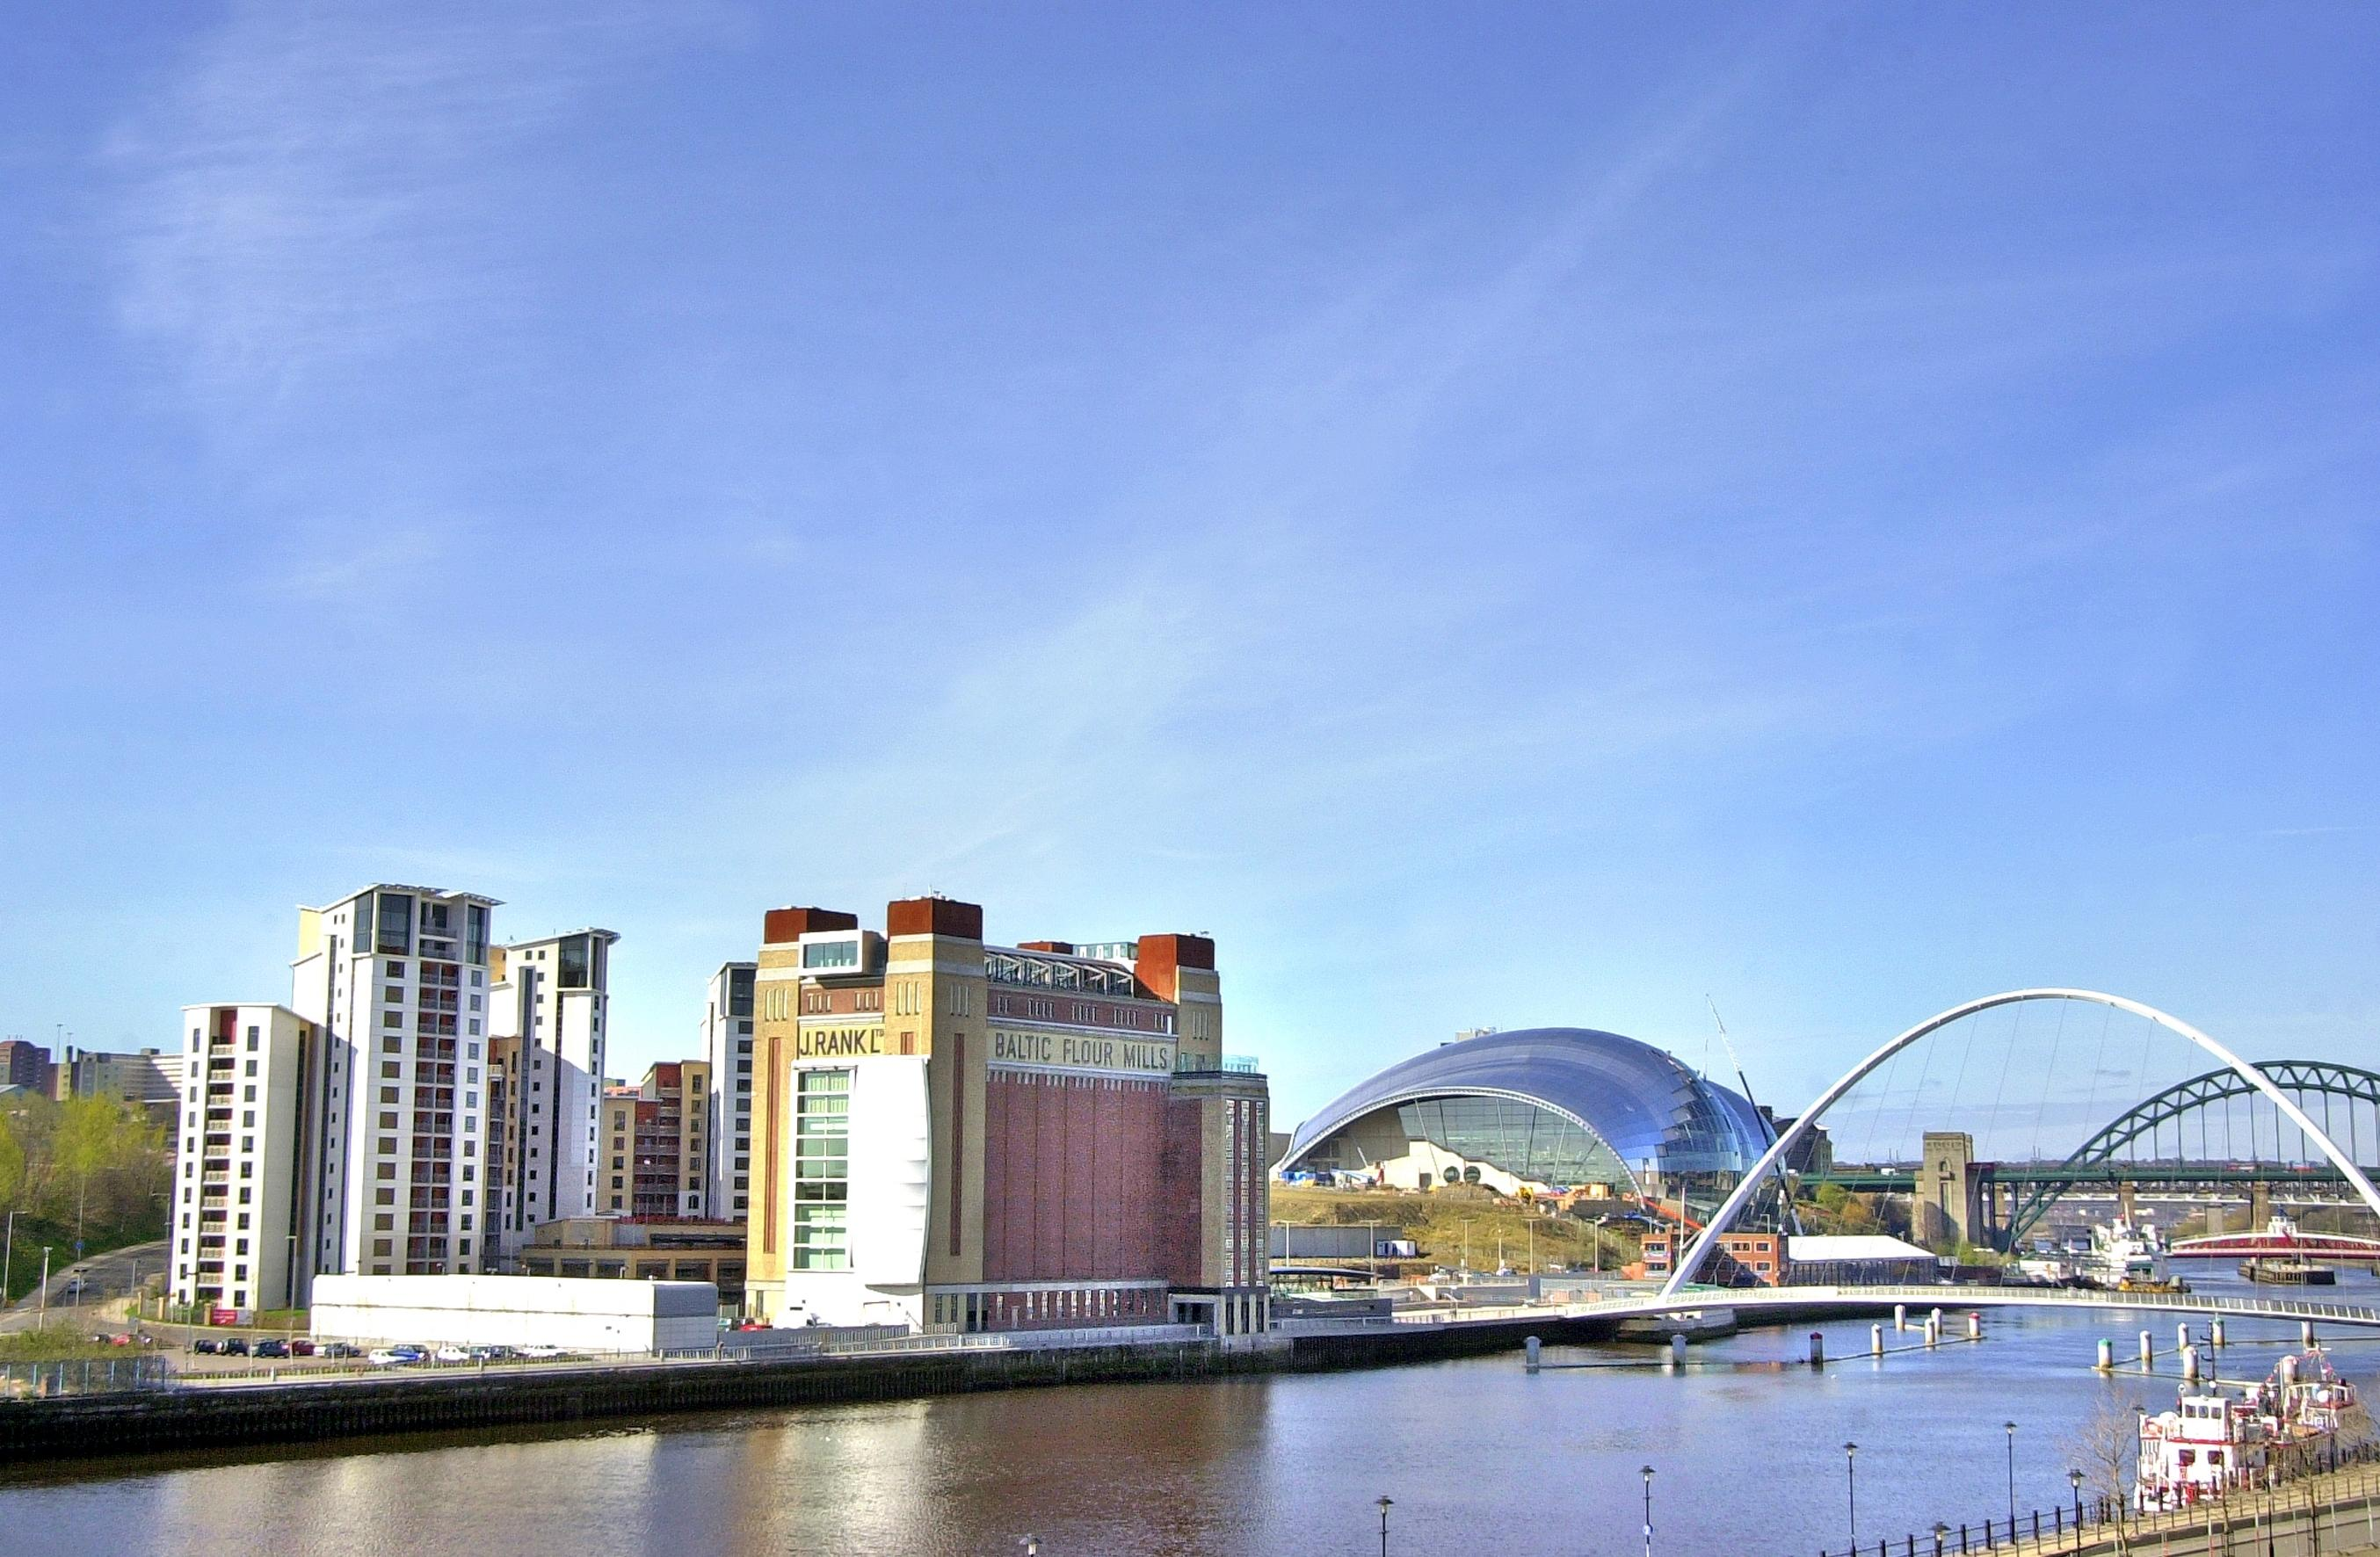 Quayside in Newcastle